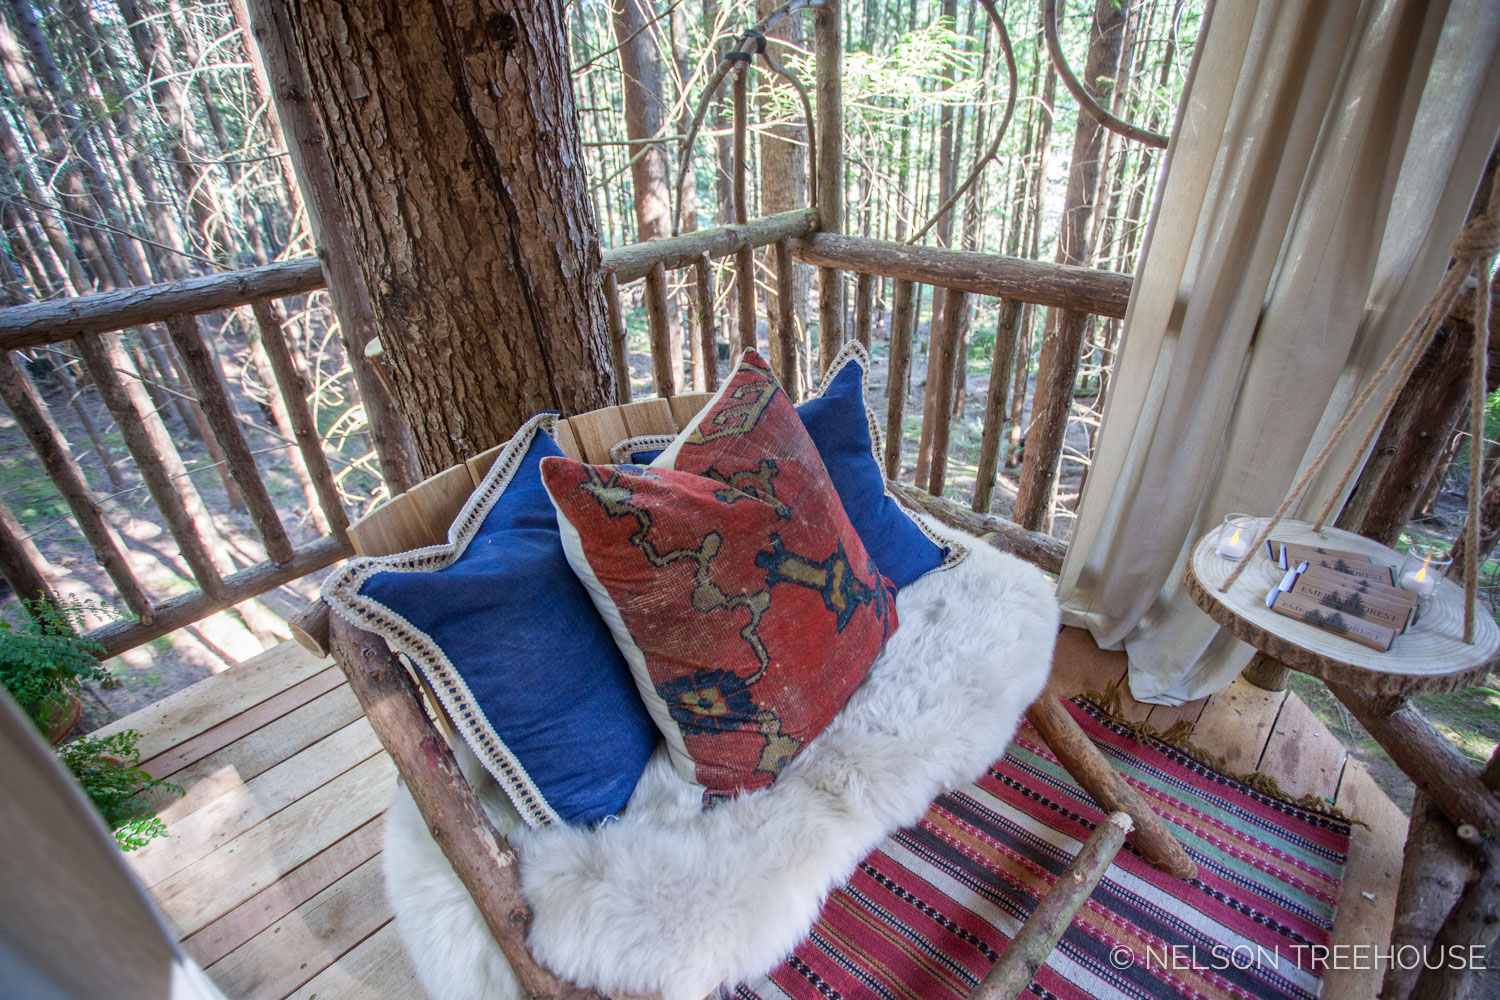 Treetop-Movie-Theater-2018-Nelson-Treehouse-708.jpg